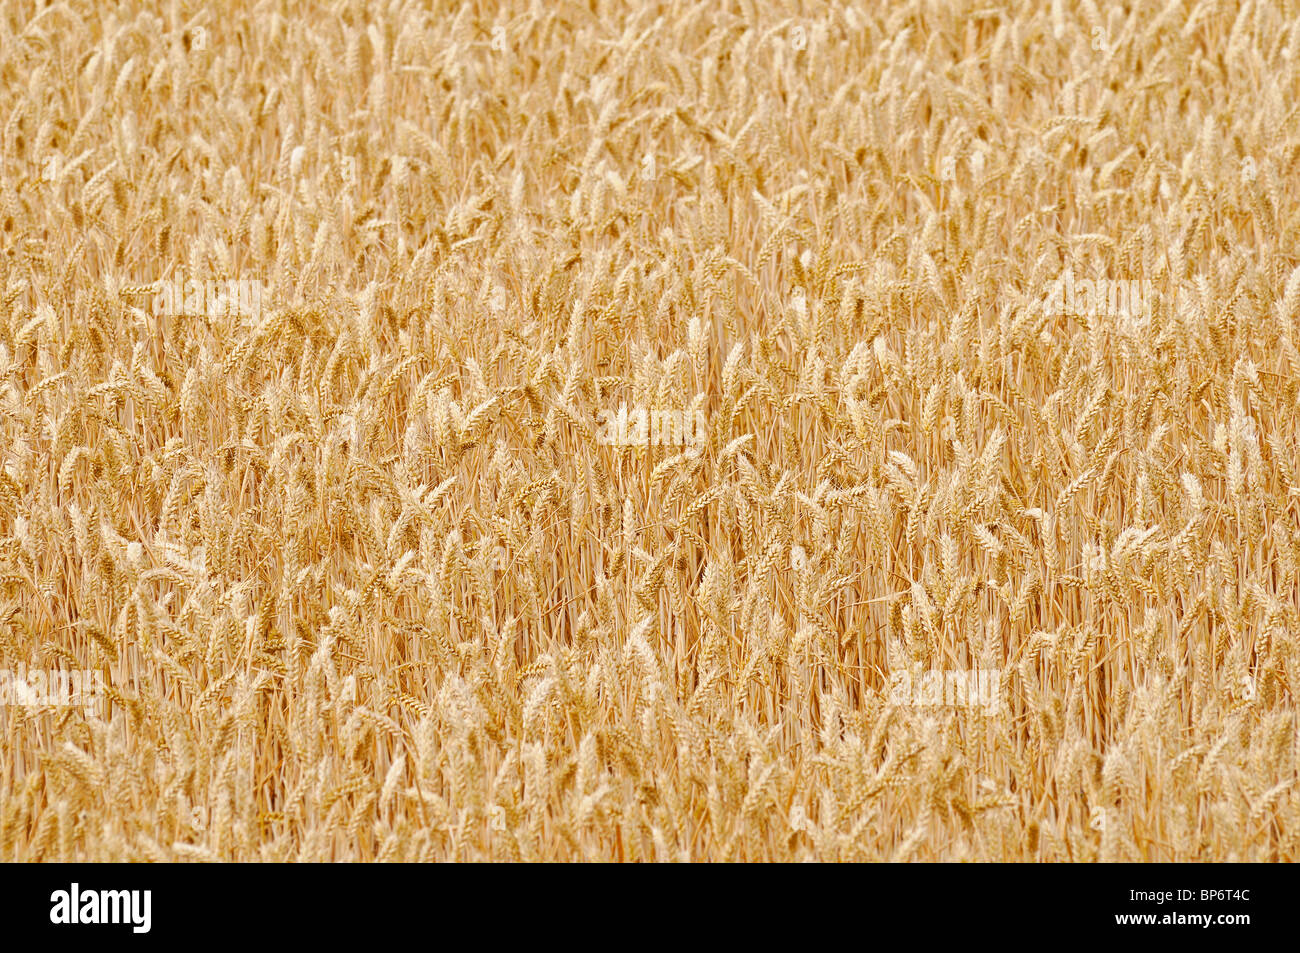 Wheatfield - Stock Image